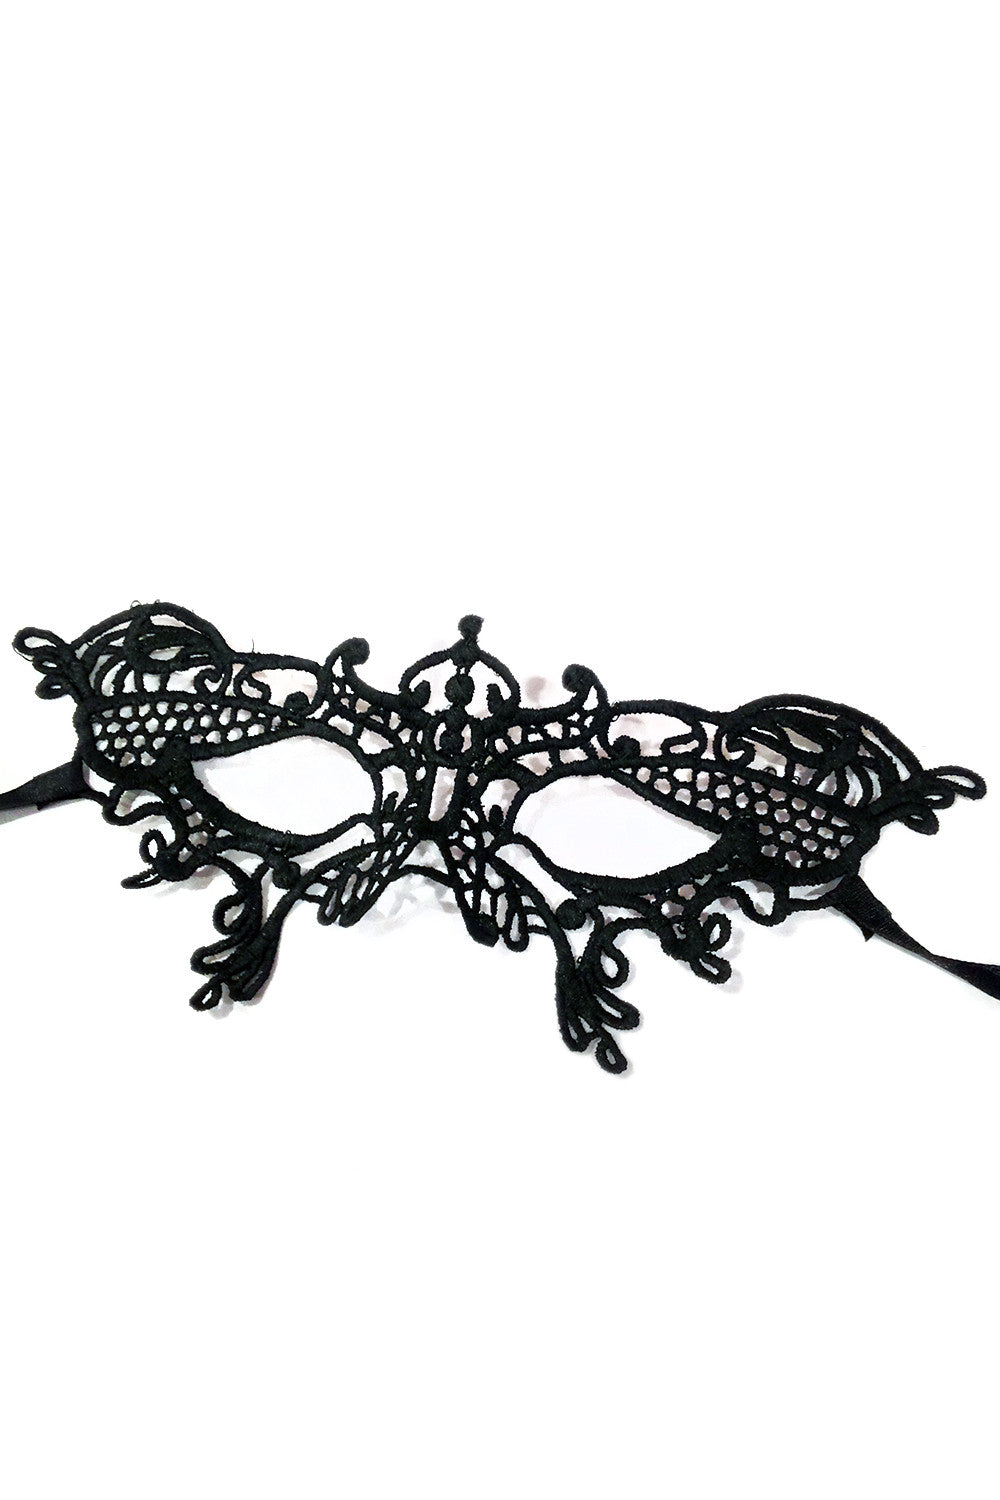 Black Molded Lace Eye Mask III